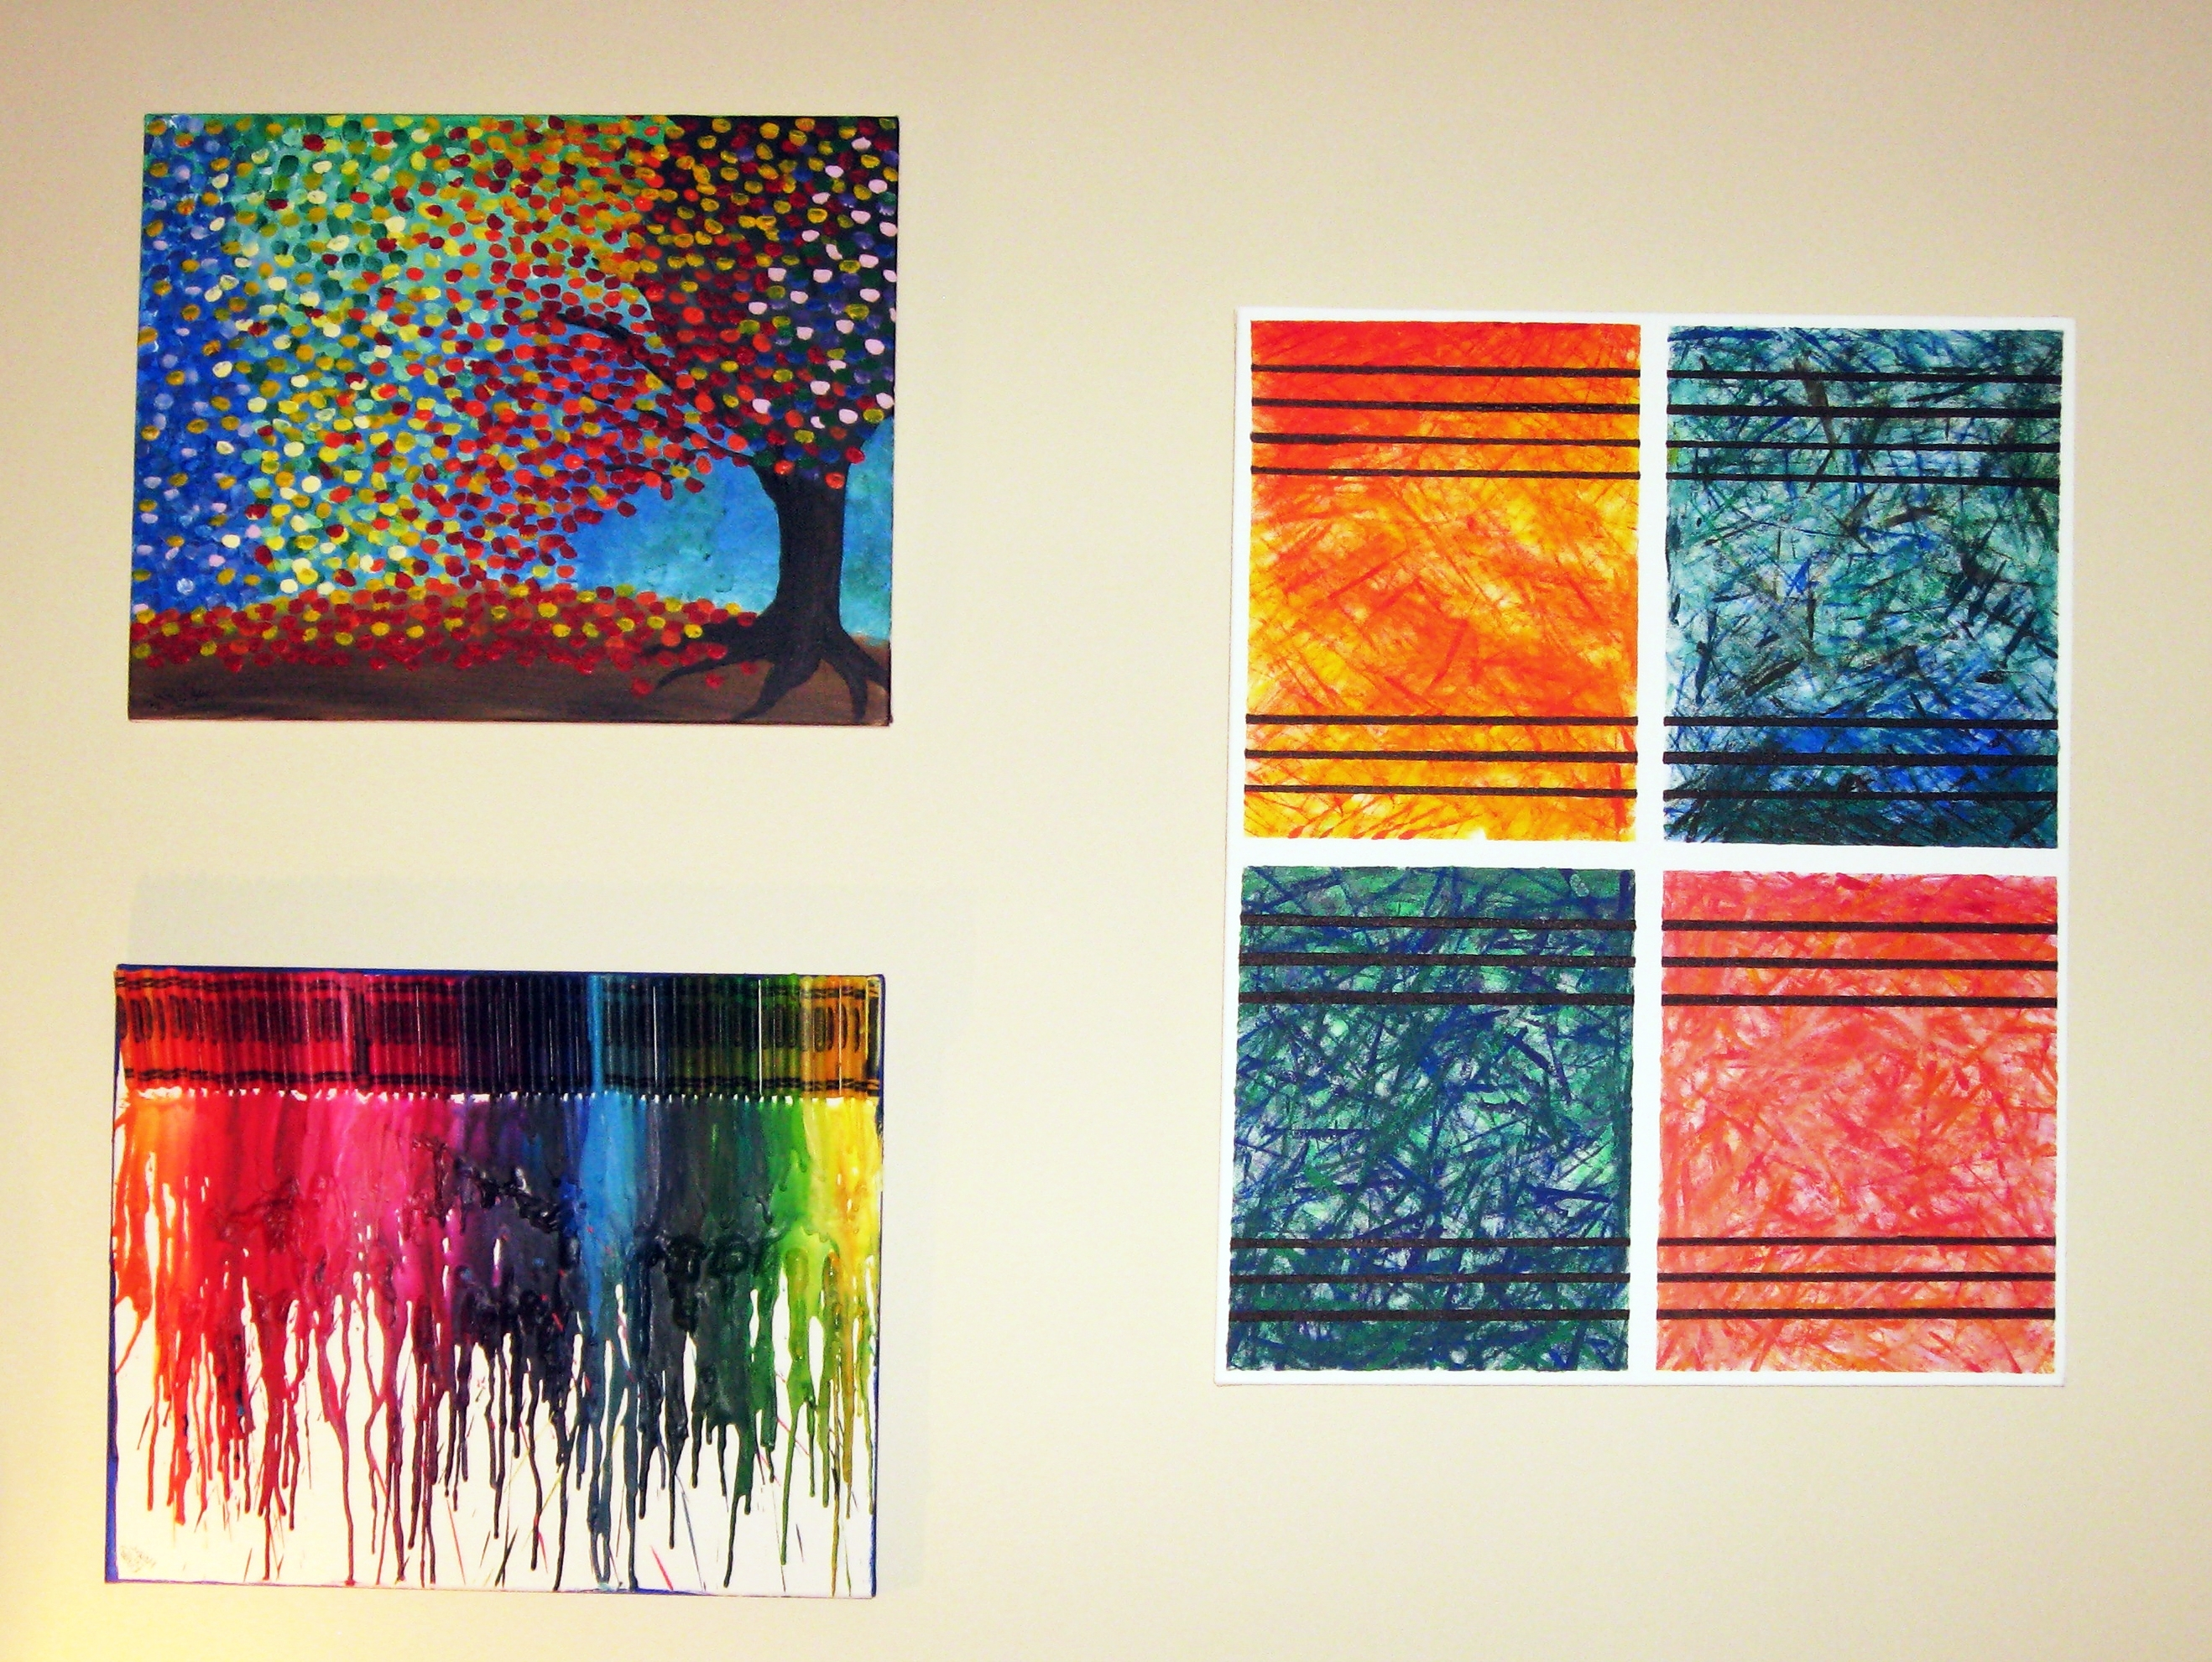 Diy Abstract Wall Art Via Make Something Mondays – Dma Homes (View 6 of 15)